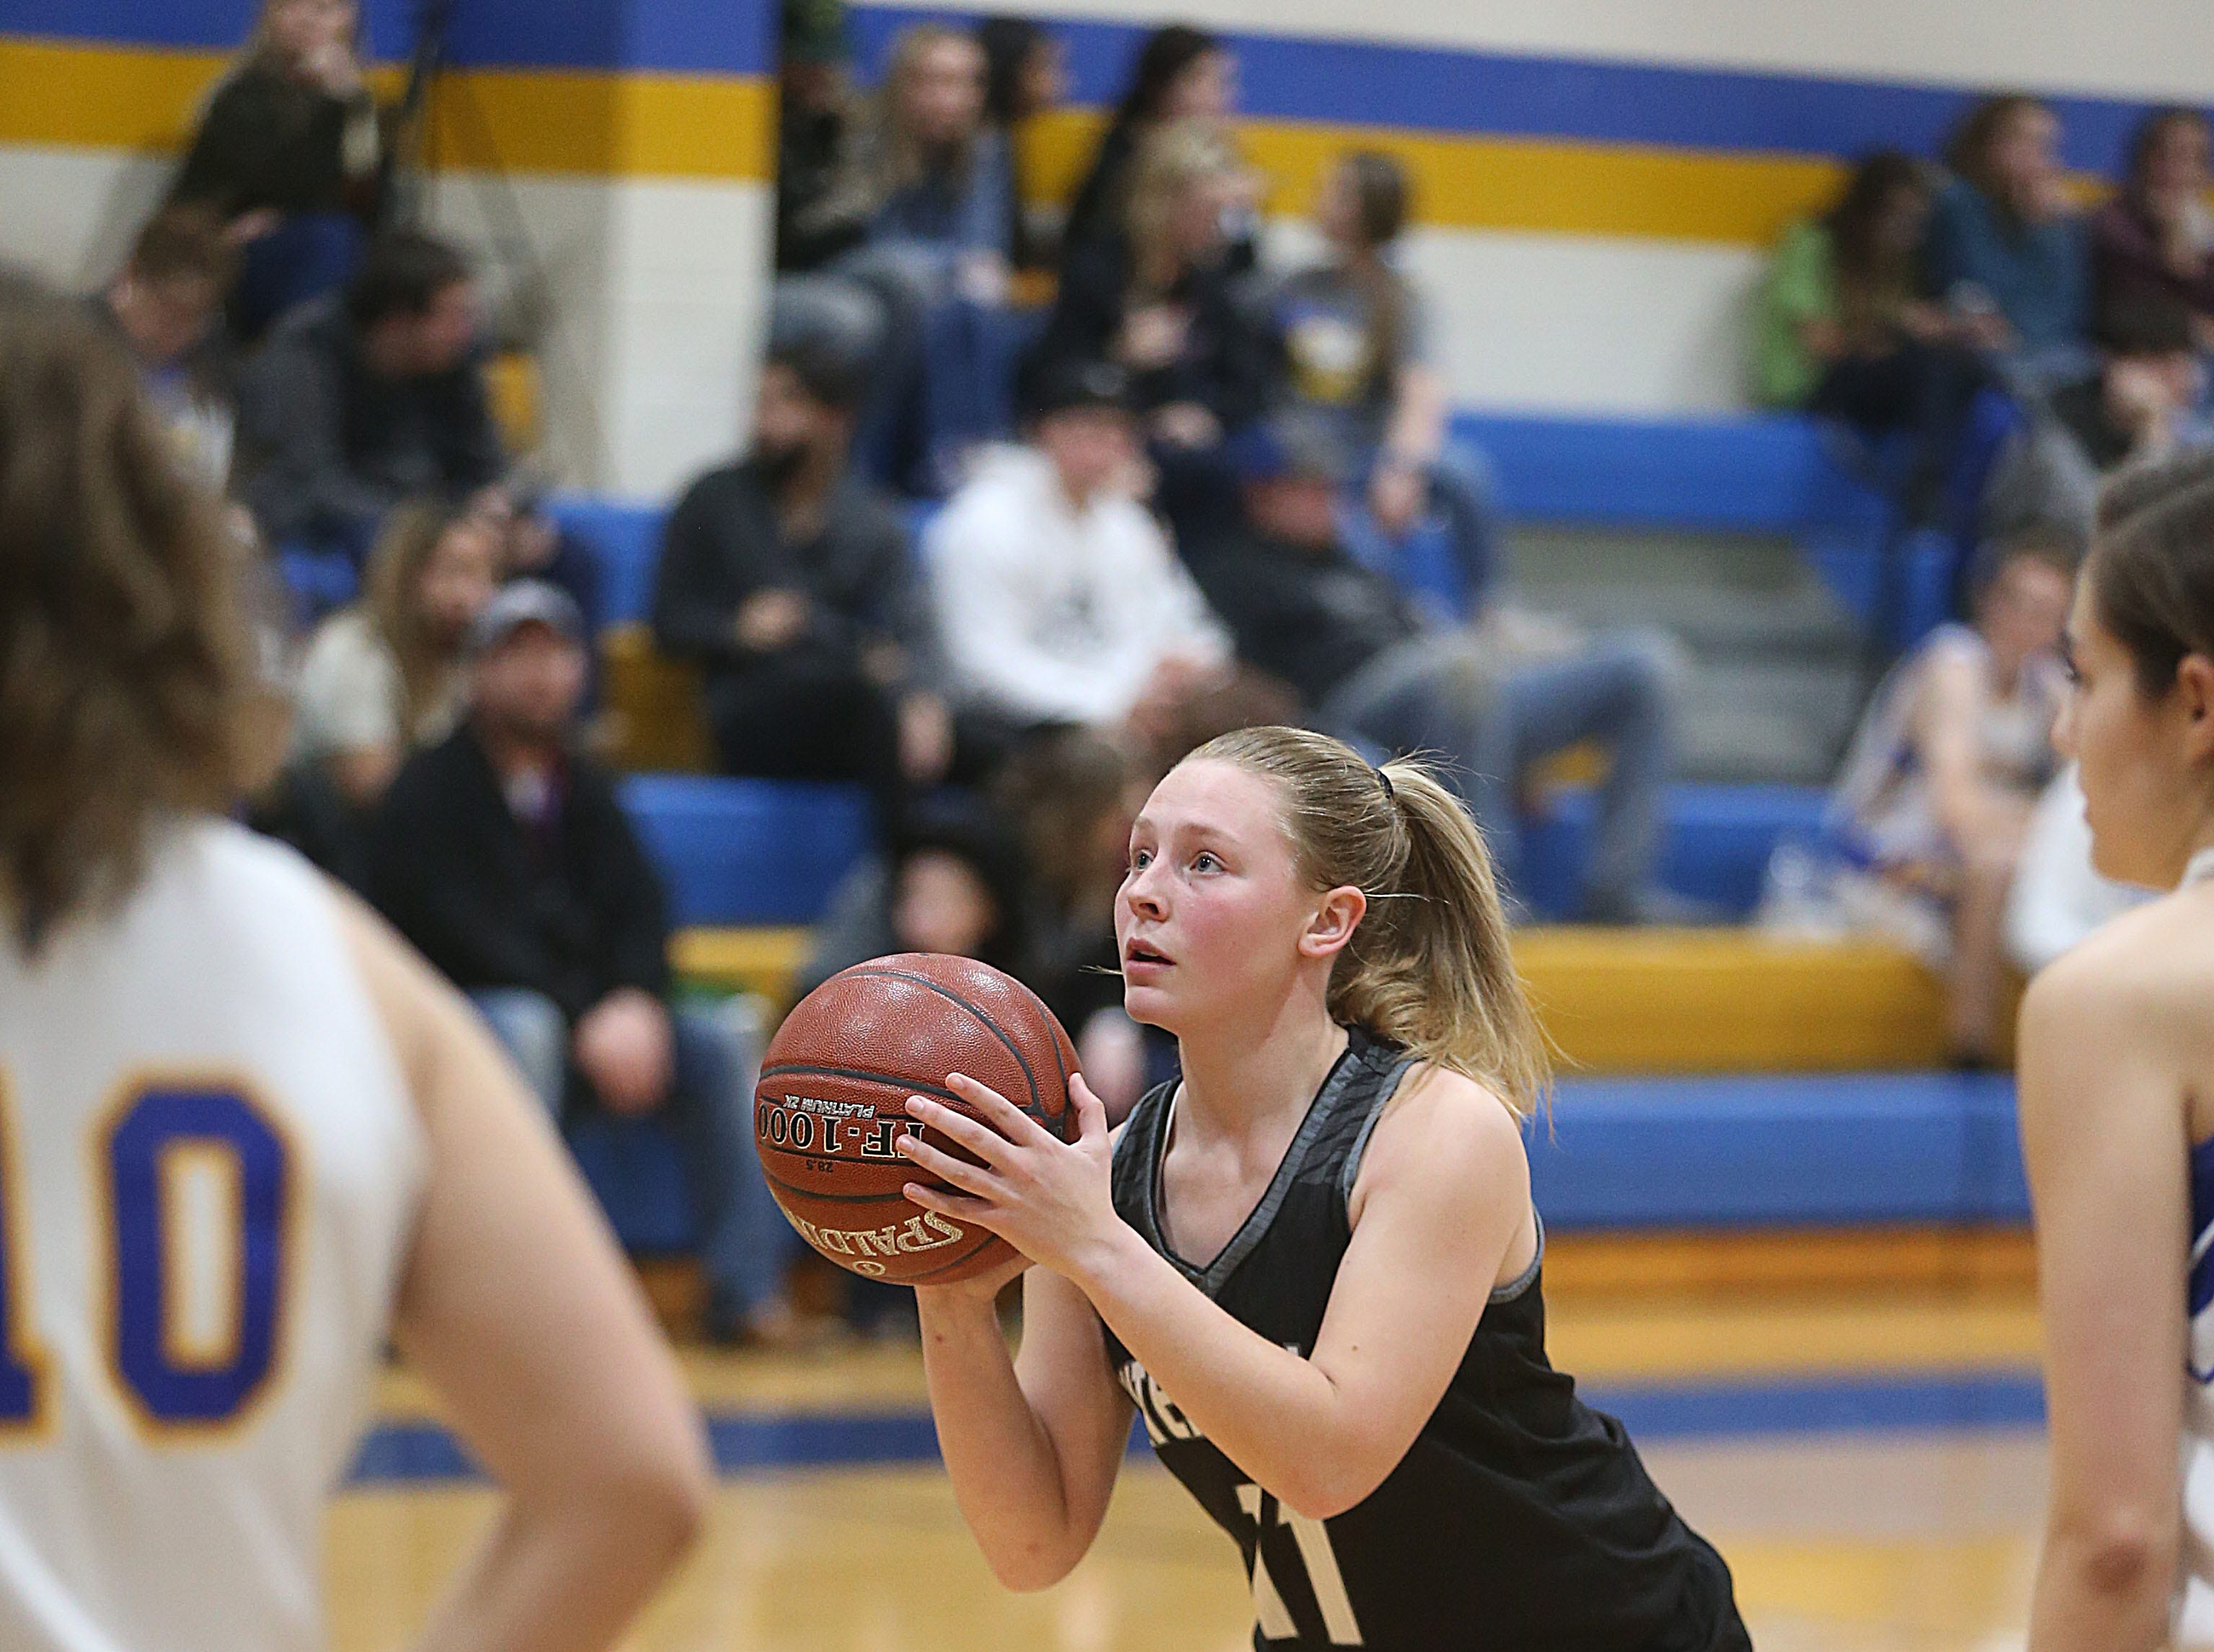 Water Valley's Shelby Kolhs (#11) prepares to shoot a free throw Tuesday, Jan. 8, 2019 during their game against Veribest.